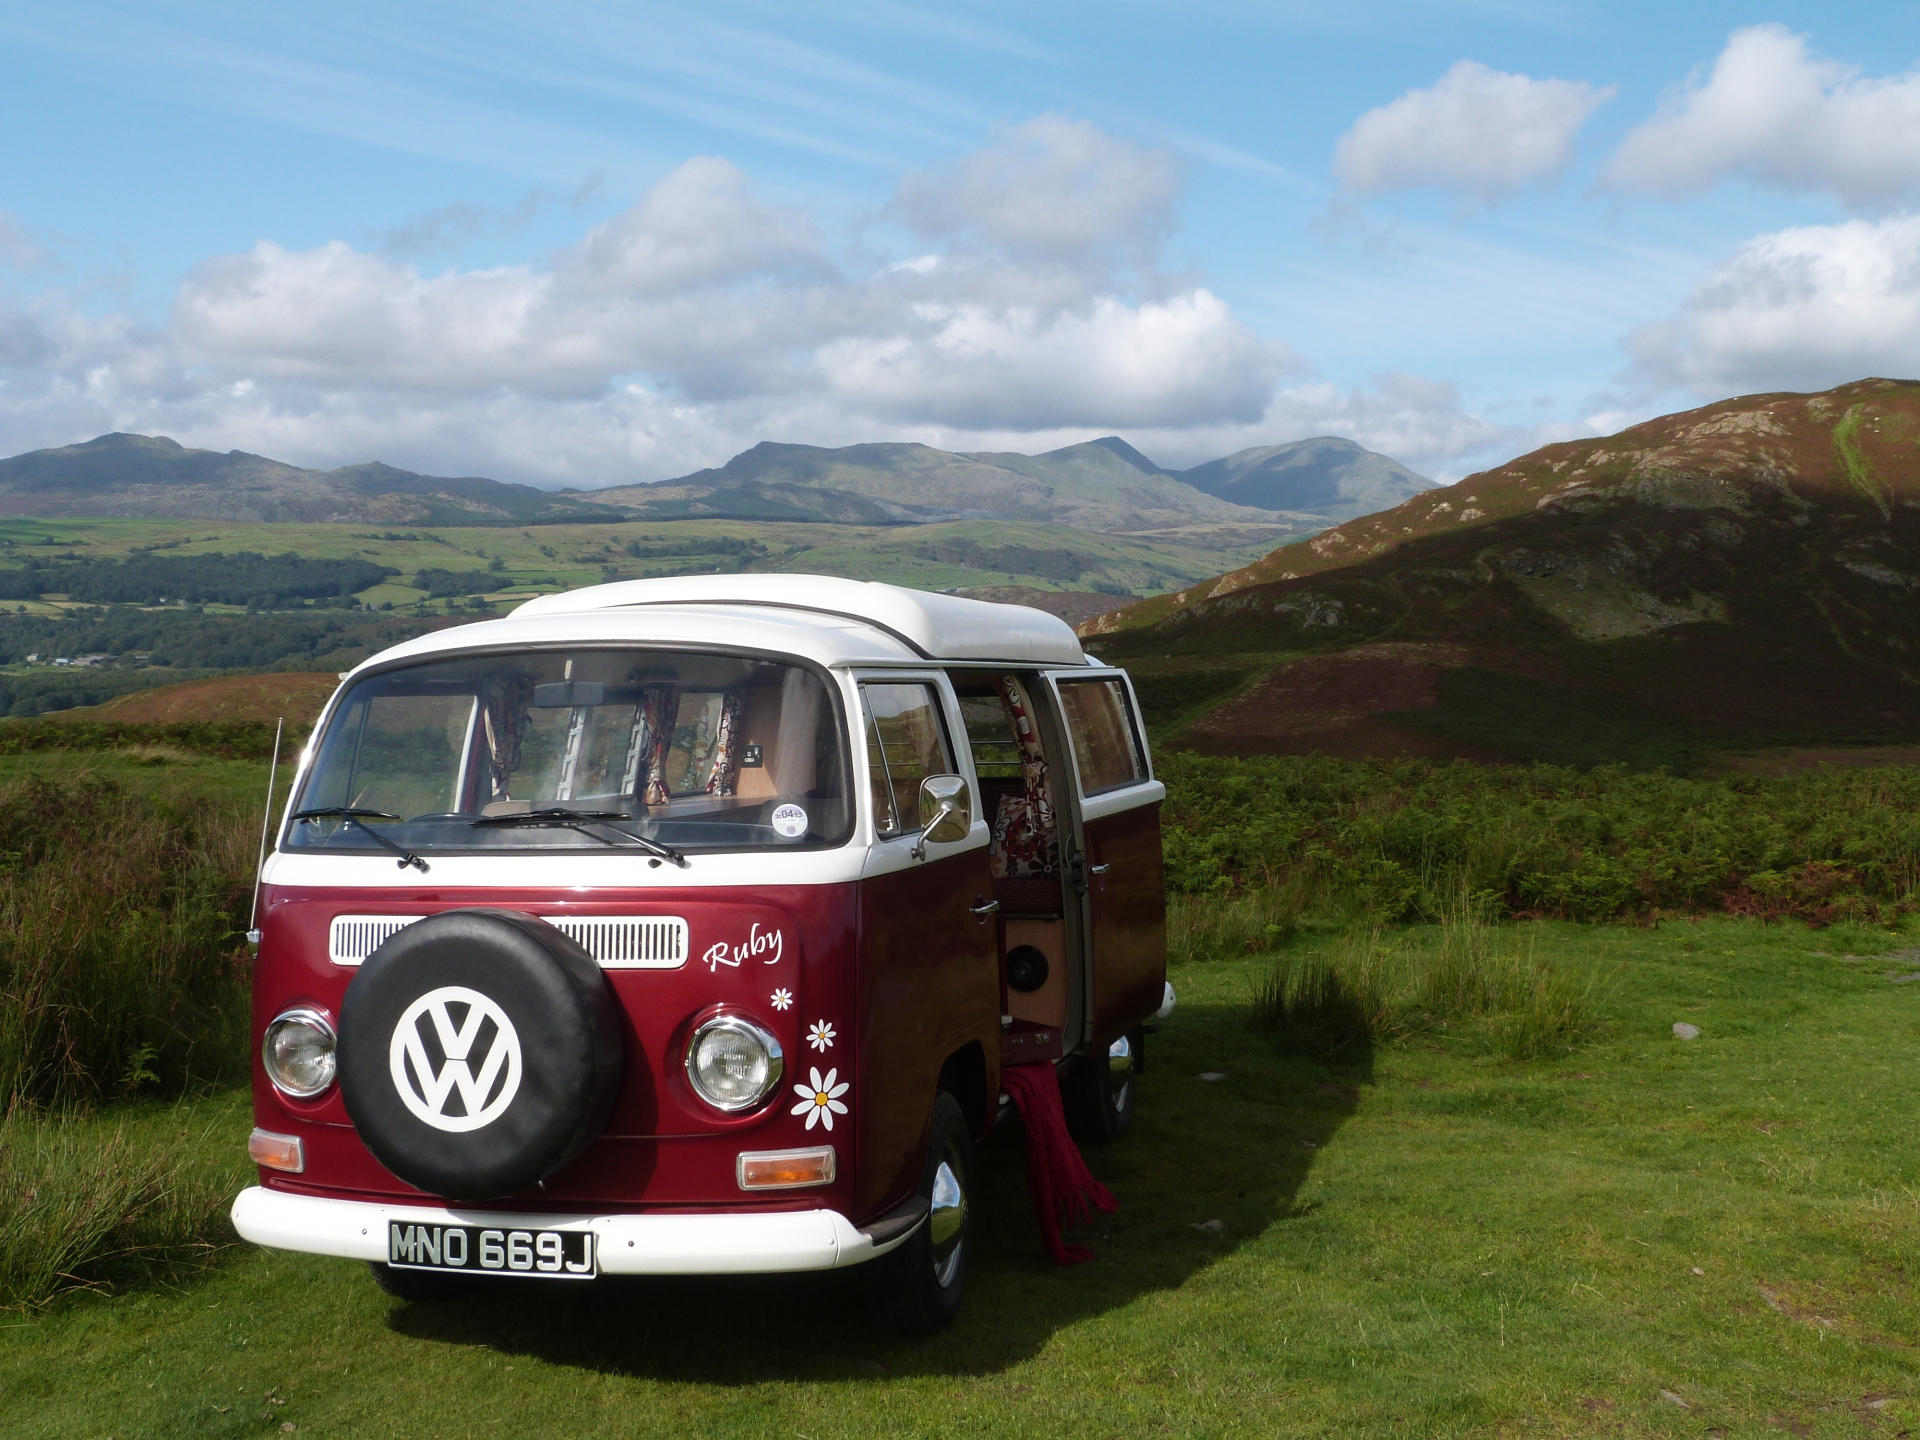 tour the lakes in a vw camper hired from pomona.